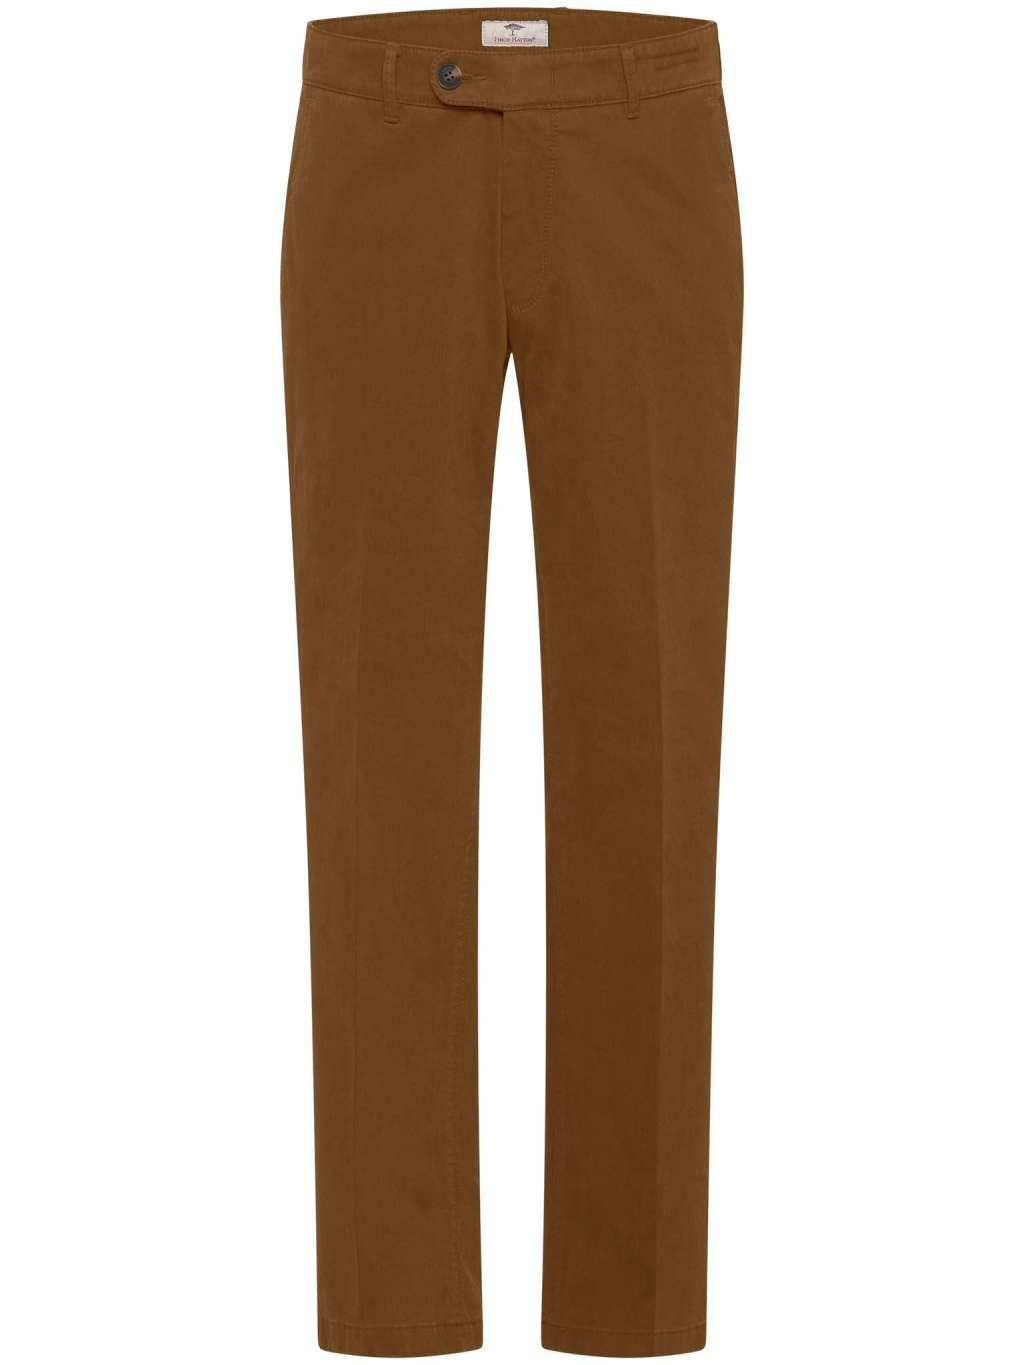 Fynch Hatton Chinos in regular classic fit. Togo, Flat Front, chosen in a Mustard colour